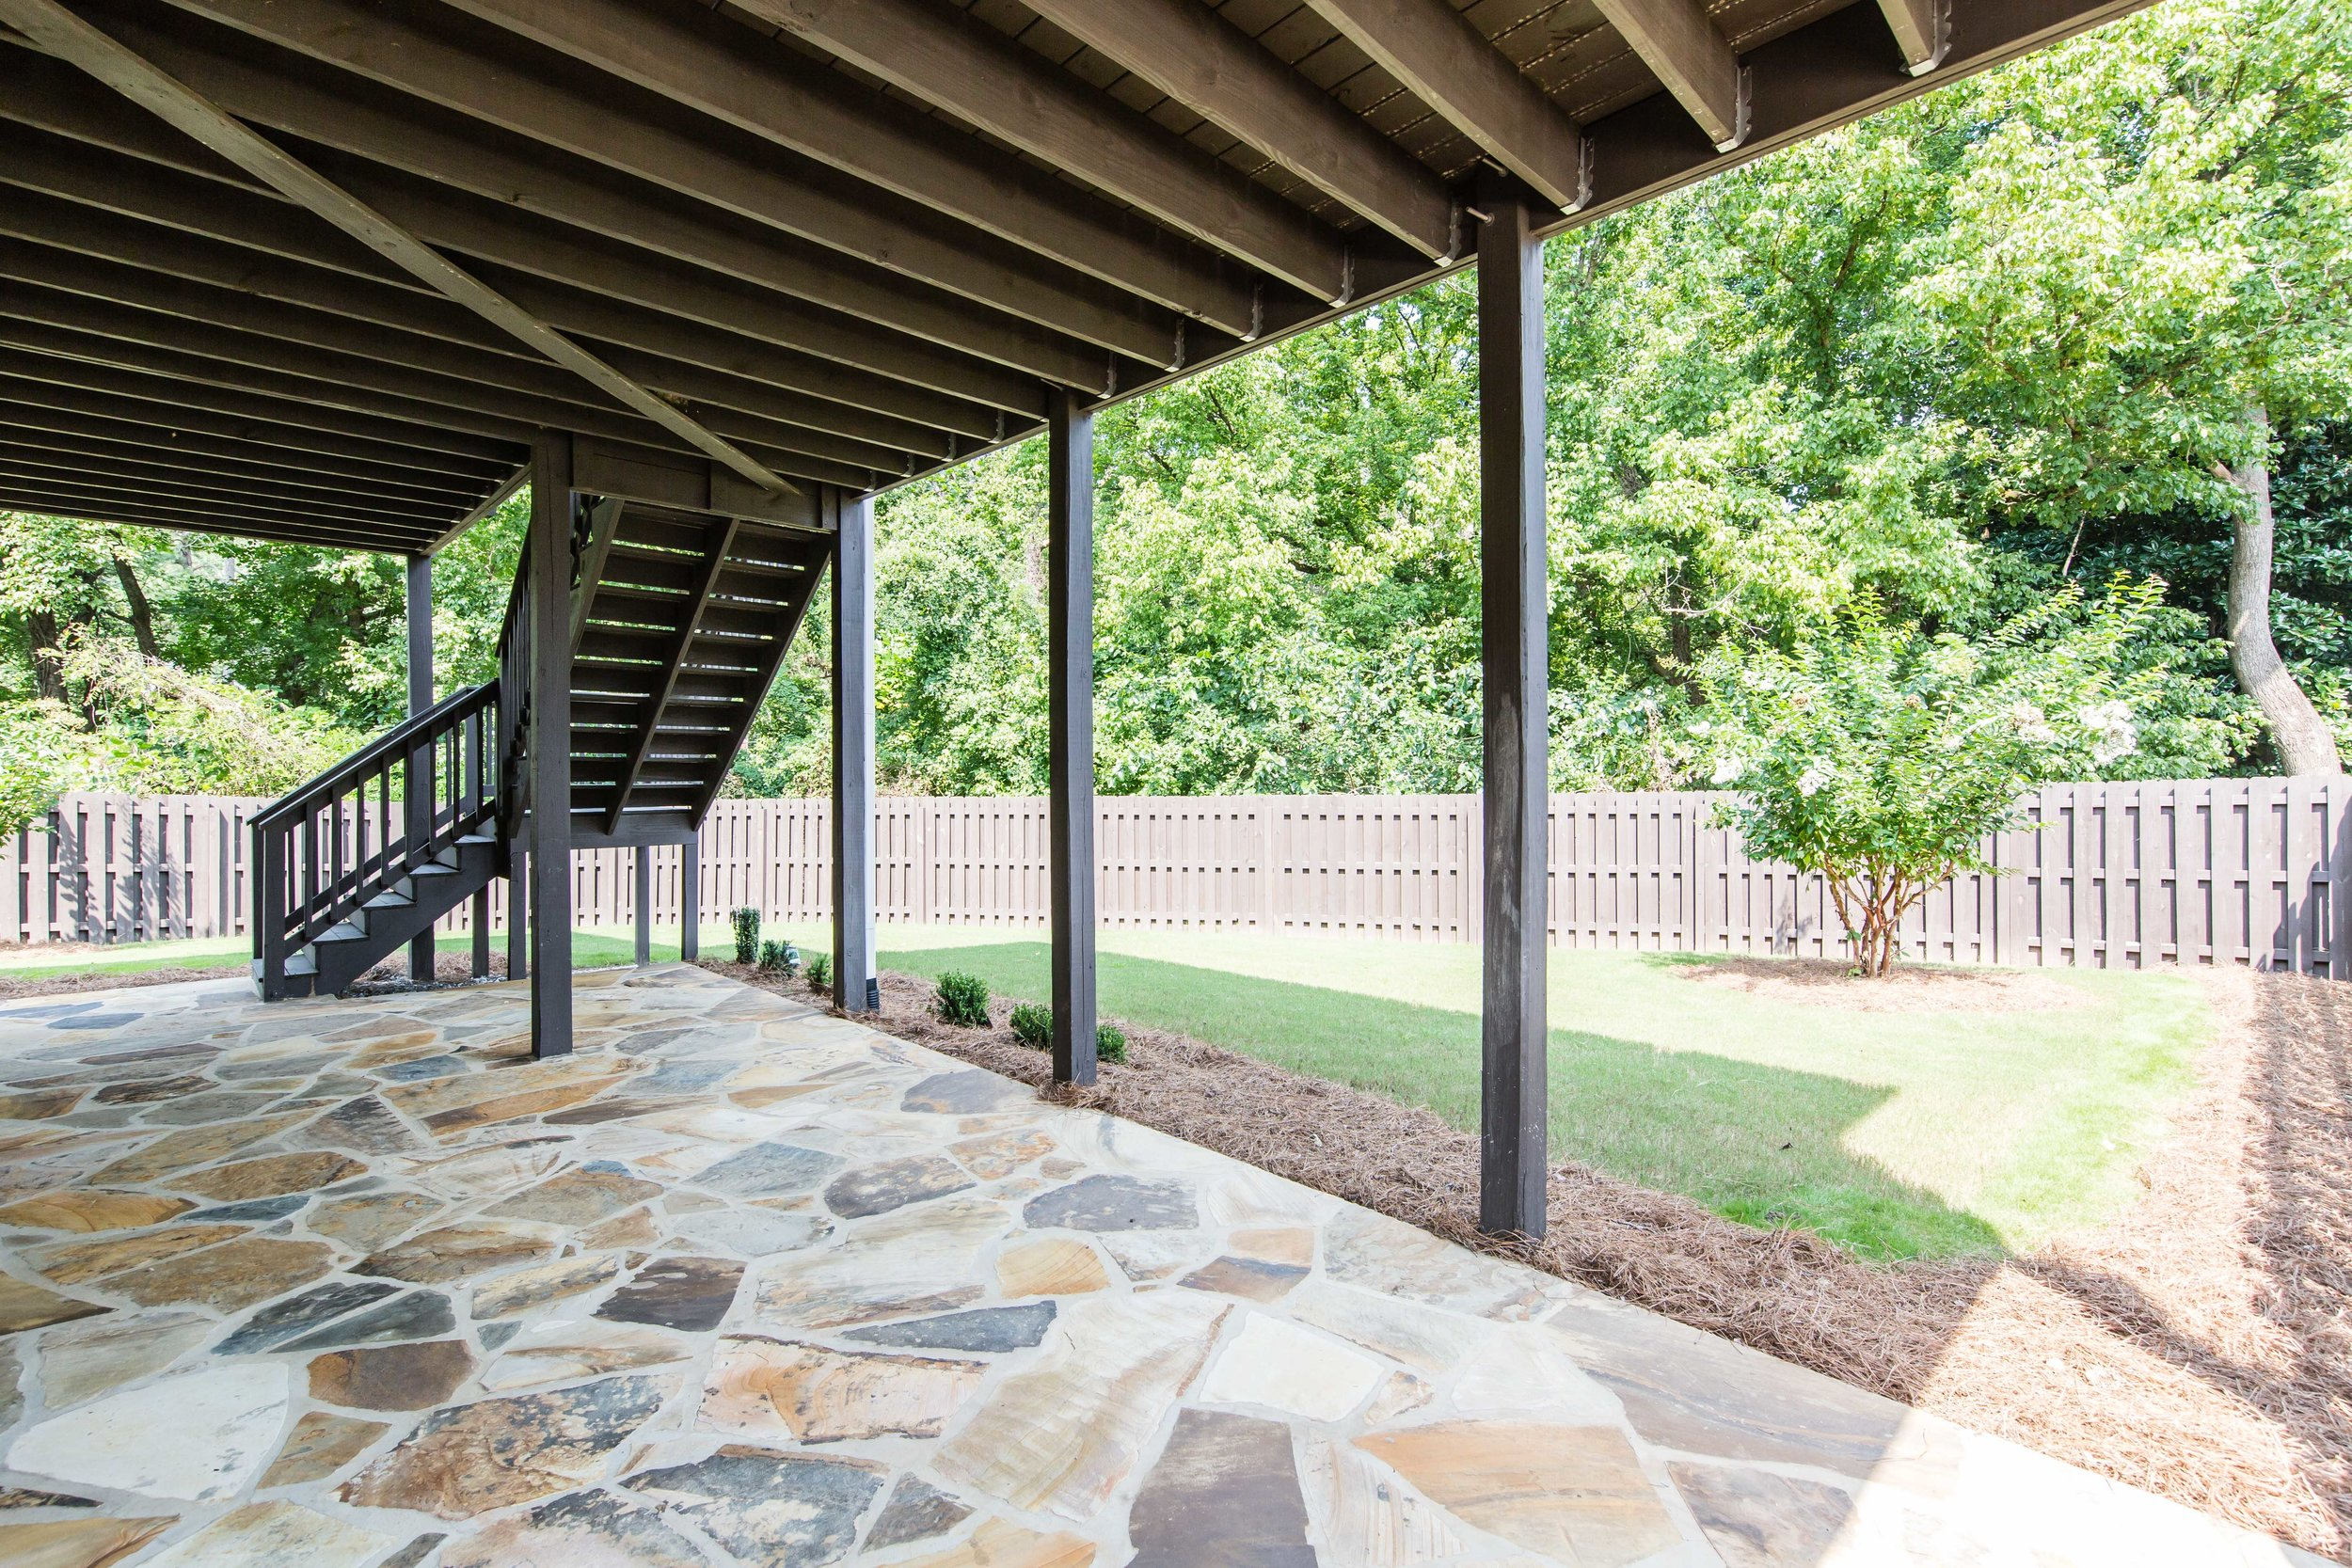 900 S Candler-Back Patio 3.jpg